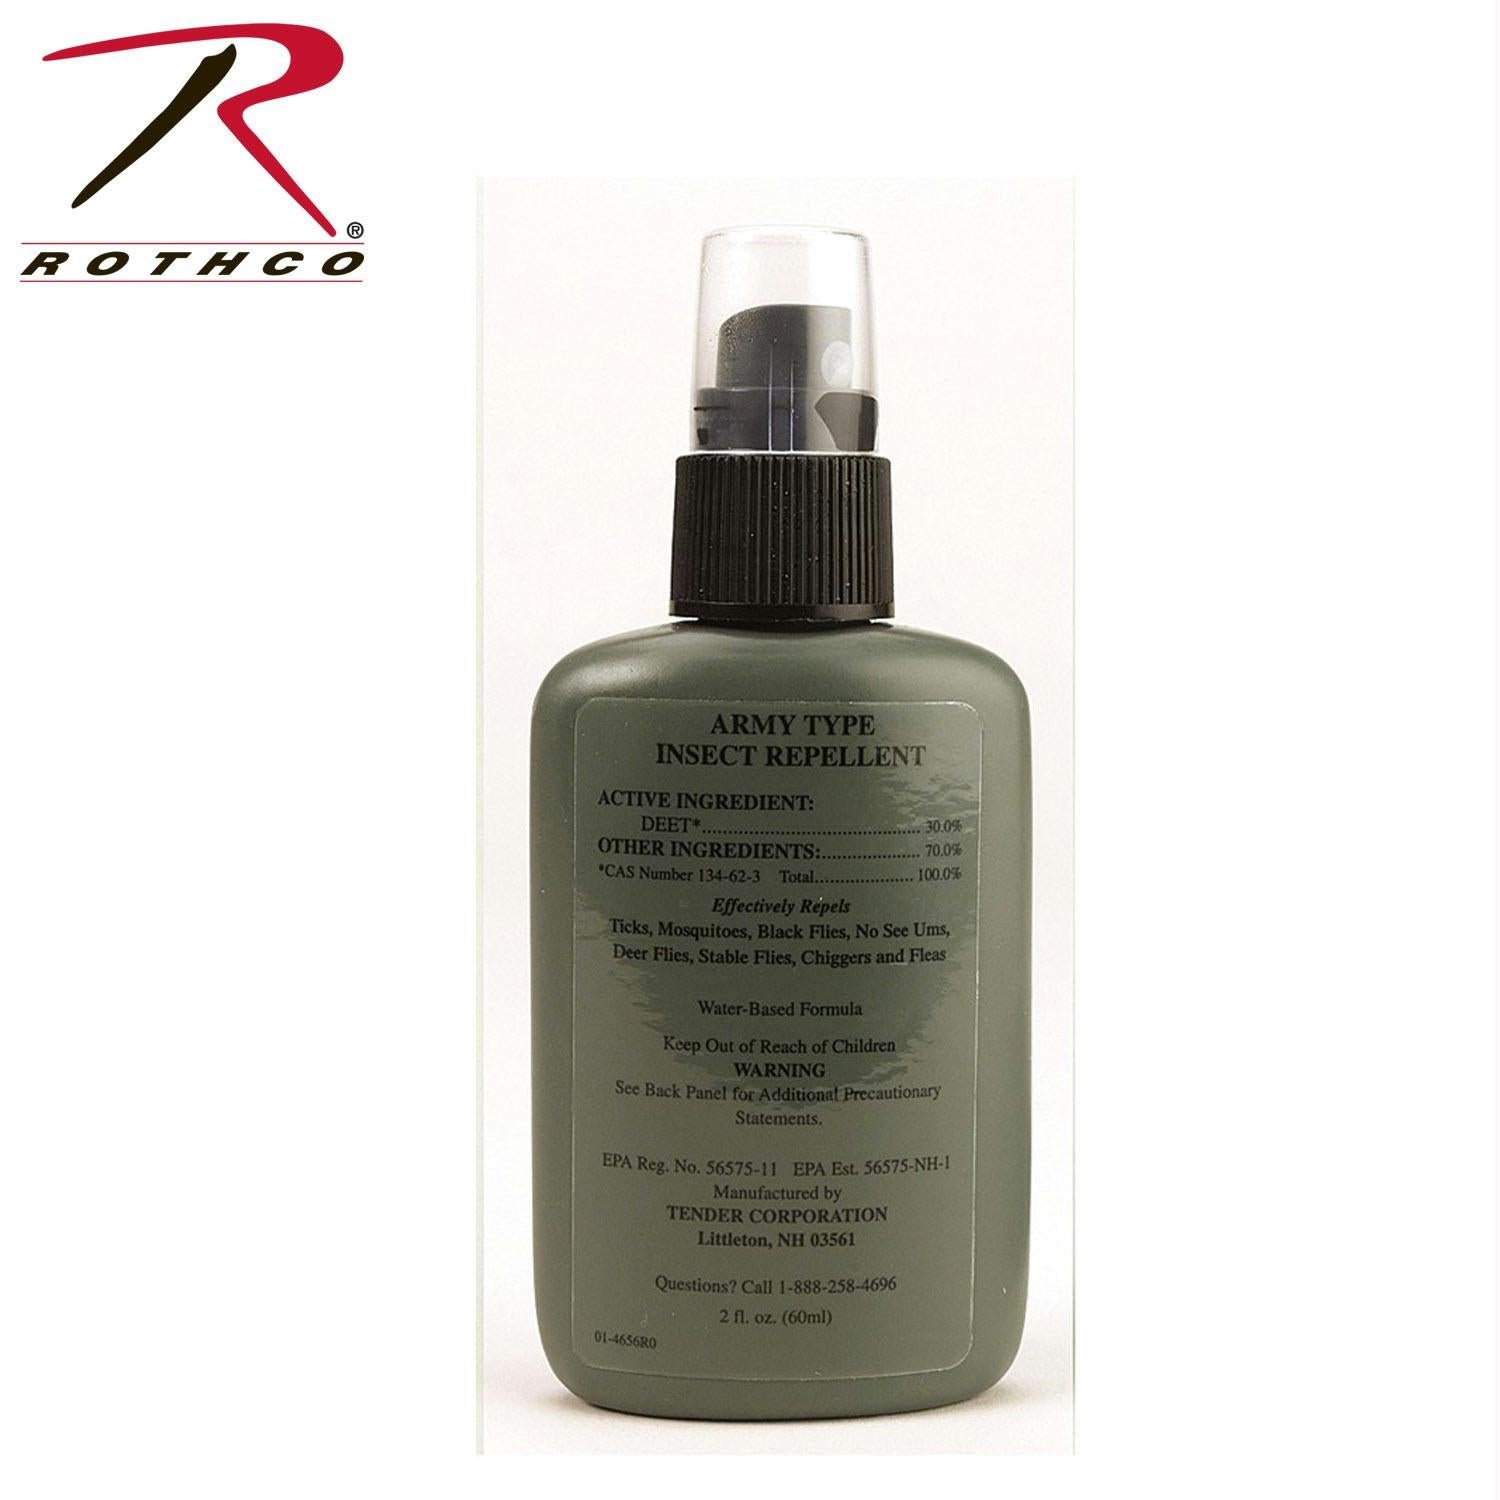 Rothco G.I. Army Type Insect Repellent - Tan